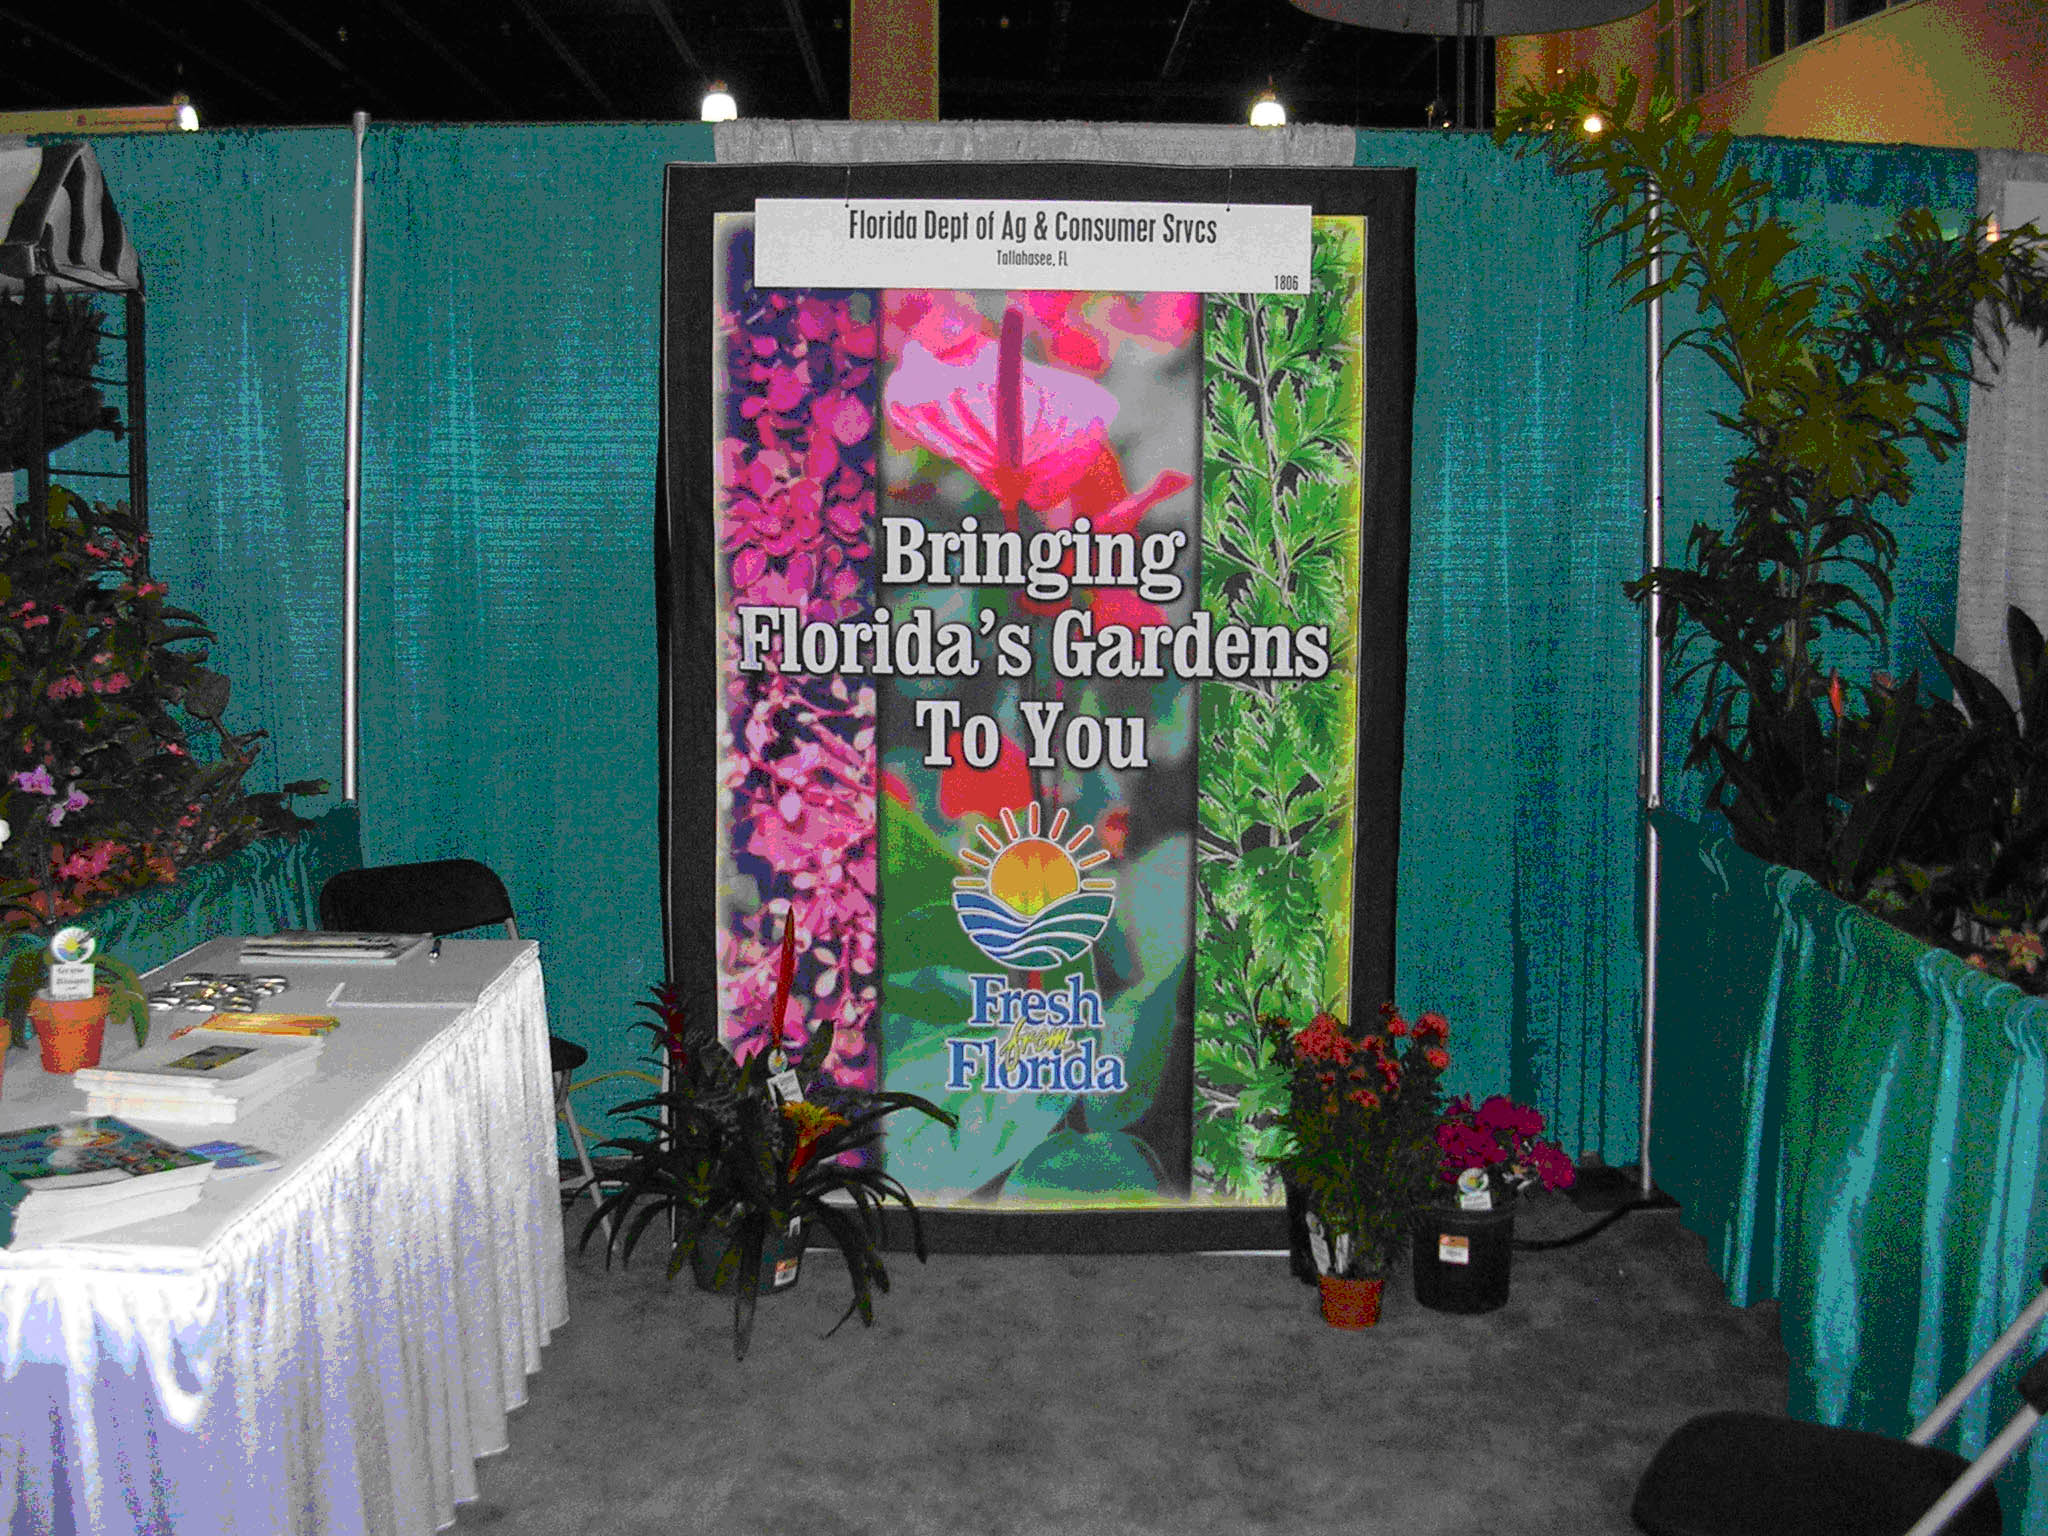 Florida Department of Agriculture - Bringing Florida's Garden to You